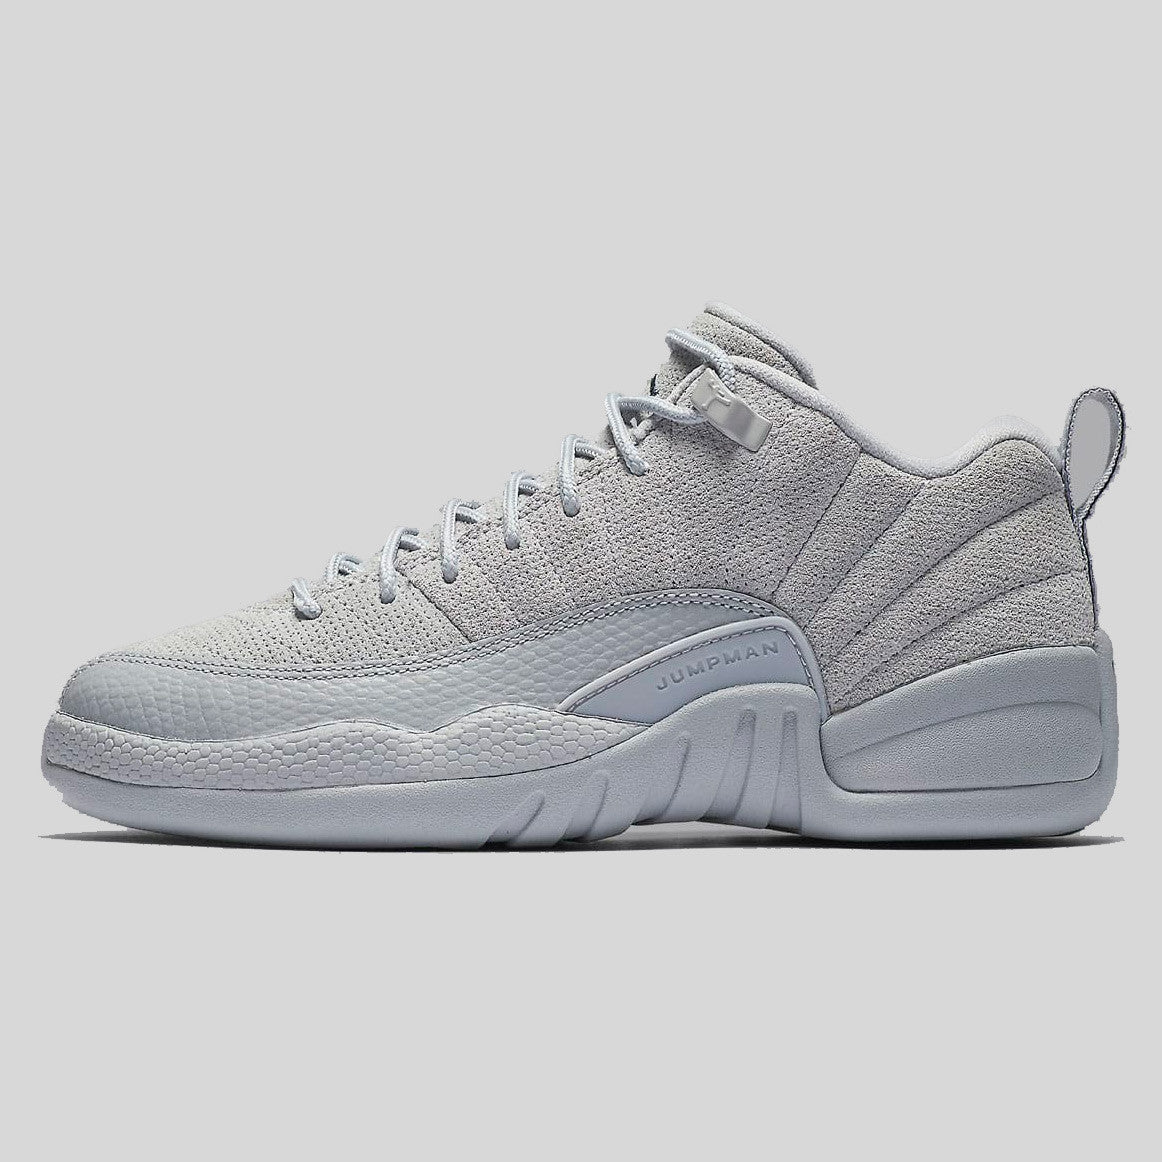 Nike Air Jordan 12 Retro Low BG (GS) Wolf Grey (308305-002